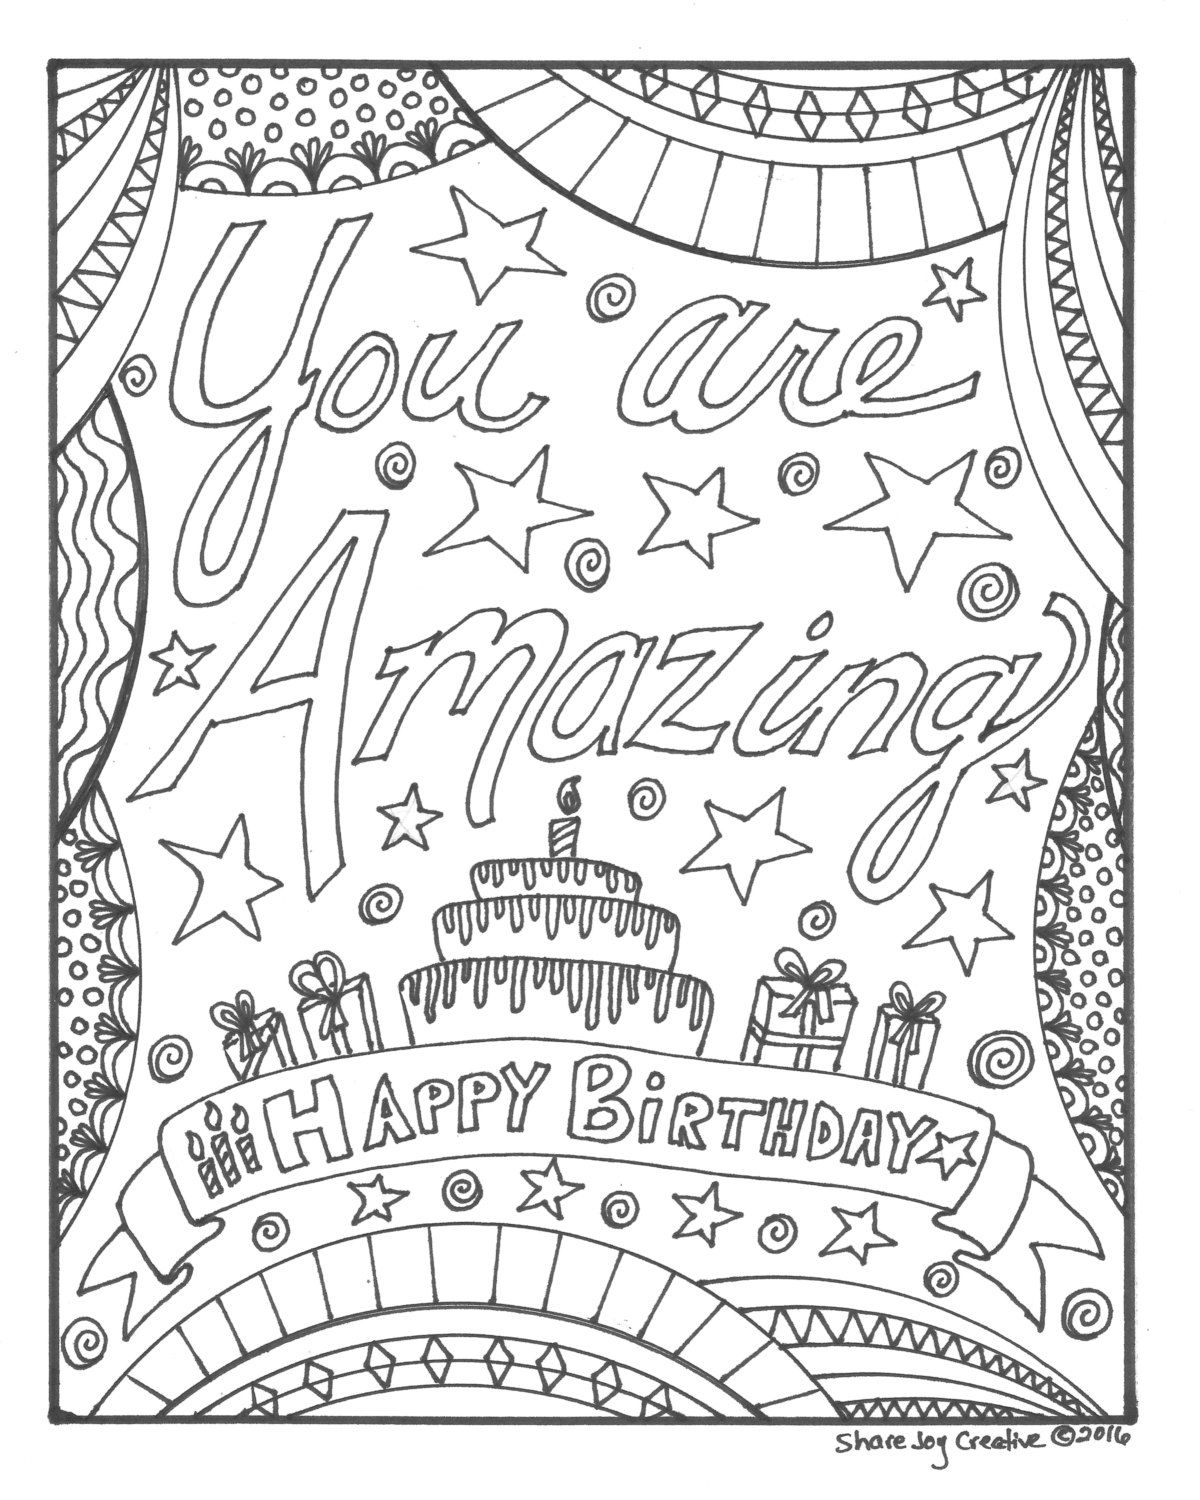 Happy Birthday Coloring Page You Are Amazing By Sharejoycreative